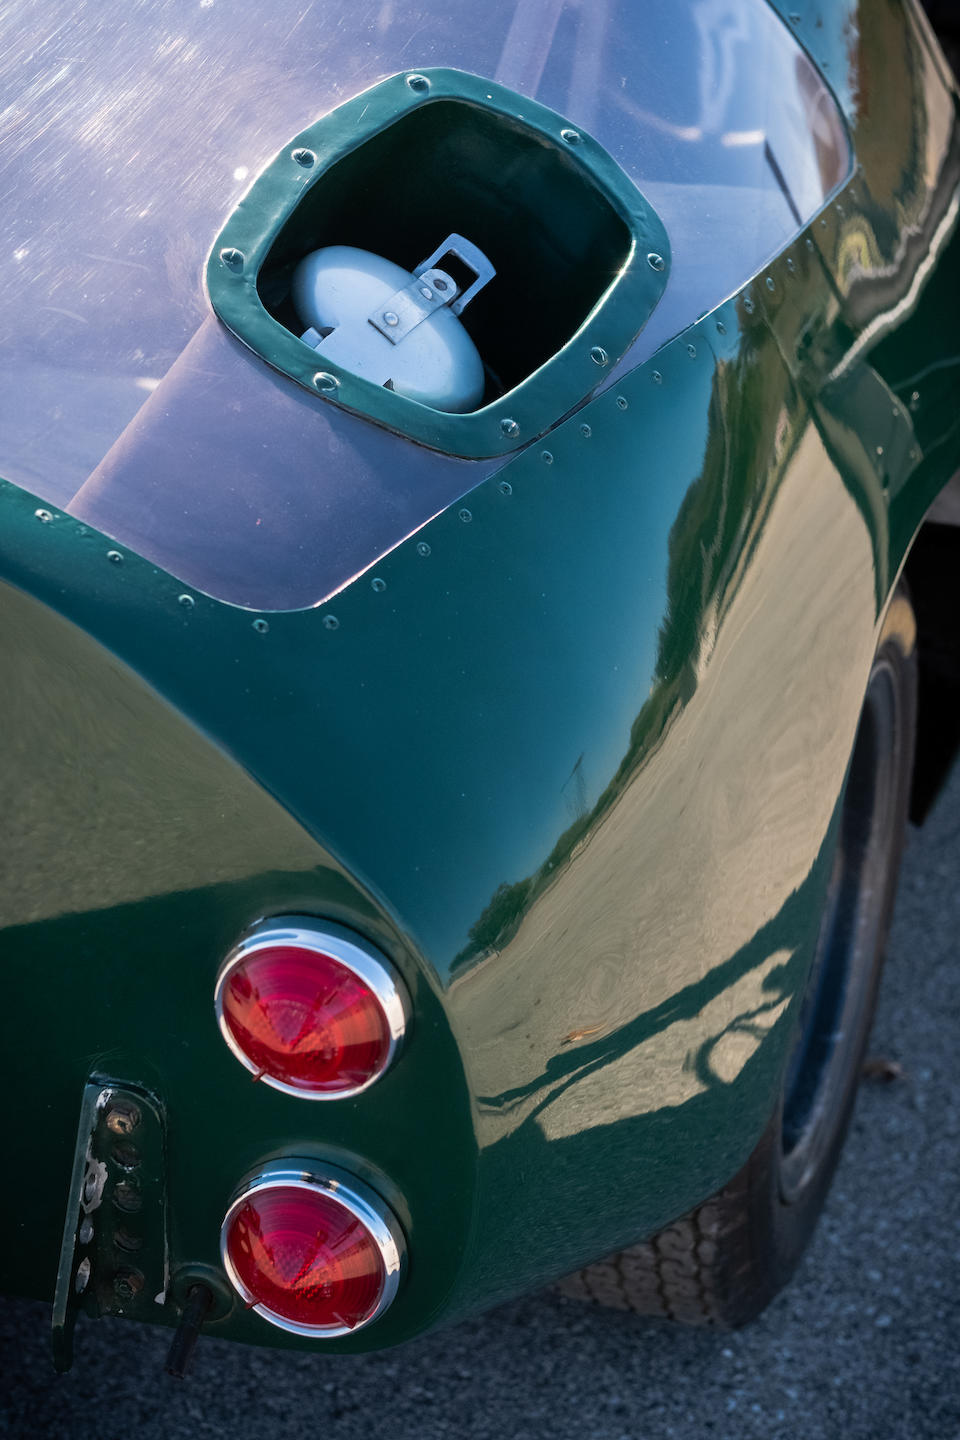 <b>1967 Austin-Healey Sprite Streamliner LeMans Coupe</b><br />Chassis no. HAN8R202<br />Engine no. XSP 26041